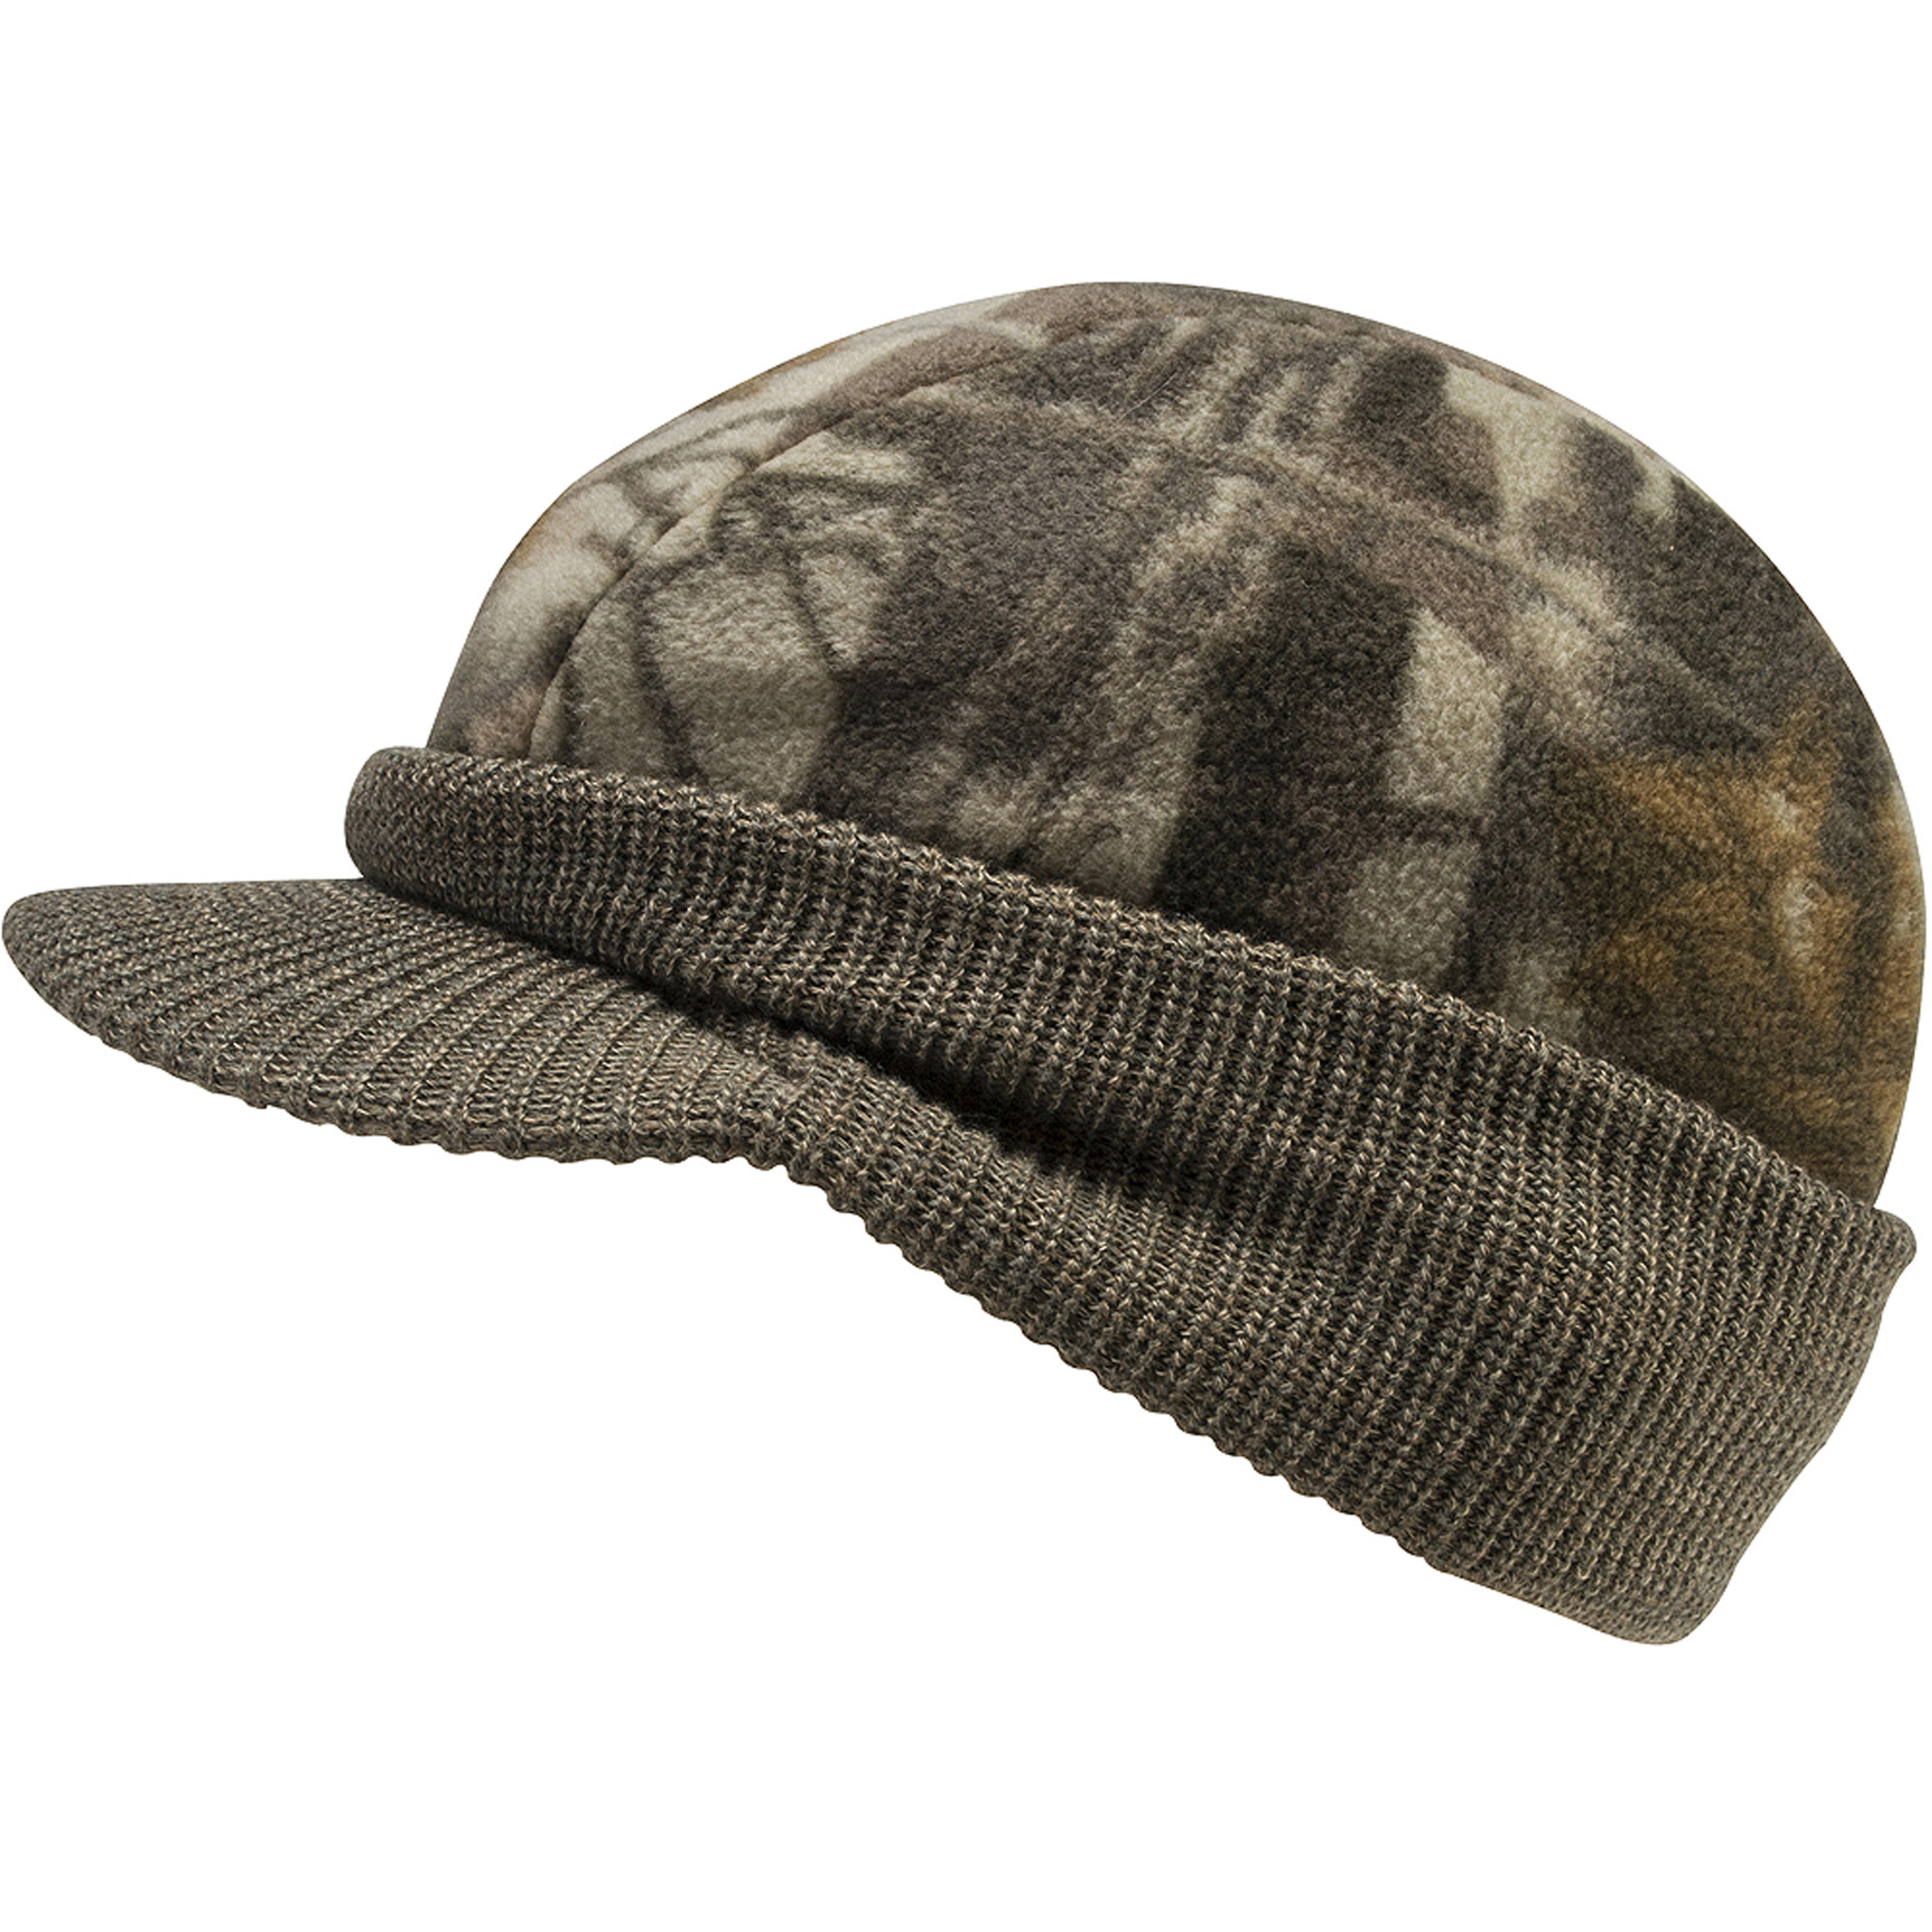 QuietWear Reversible Radar Hat by Reliable of Milwuakee